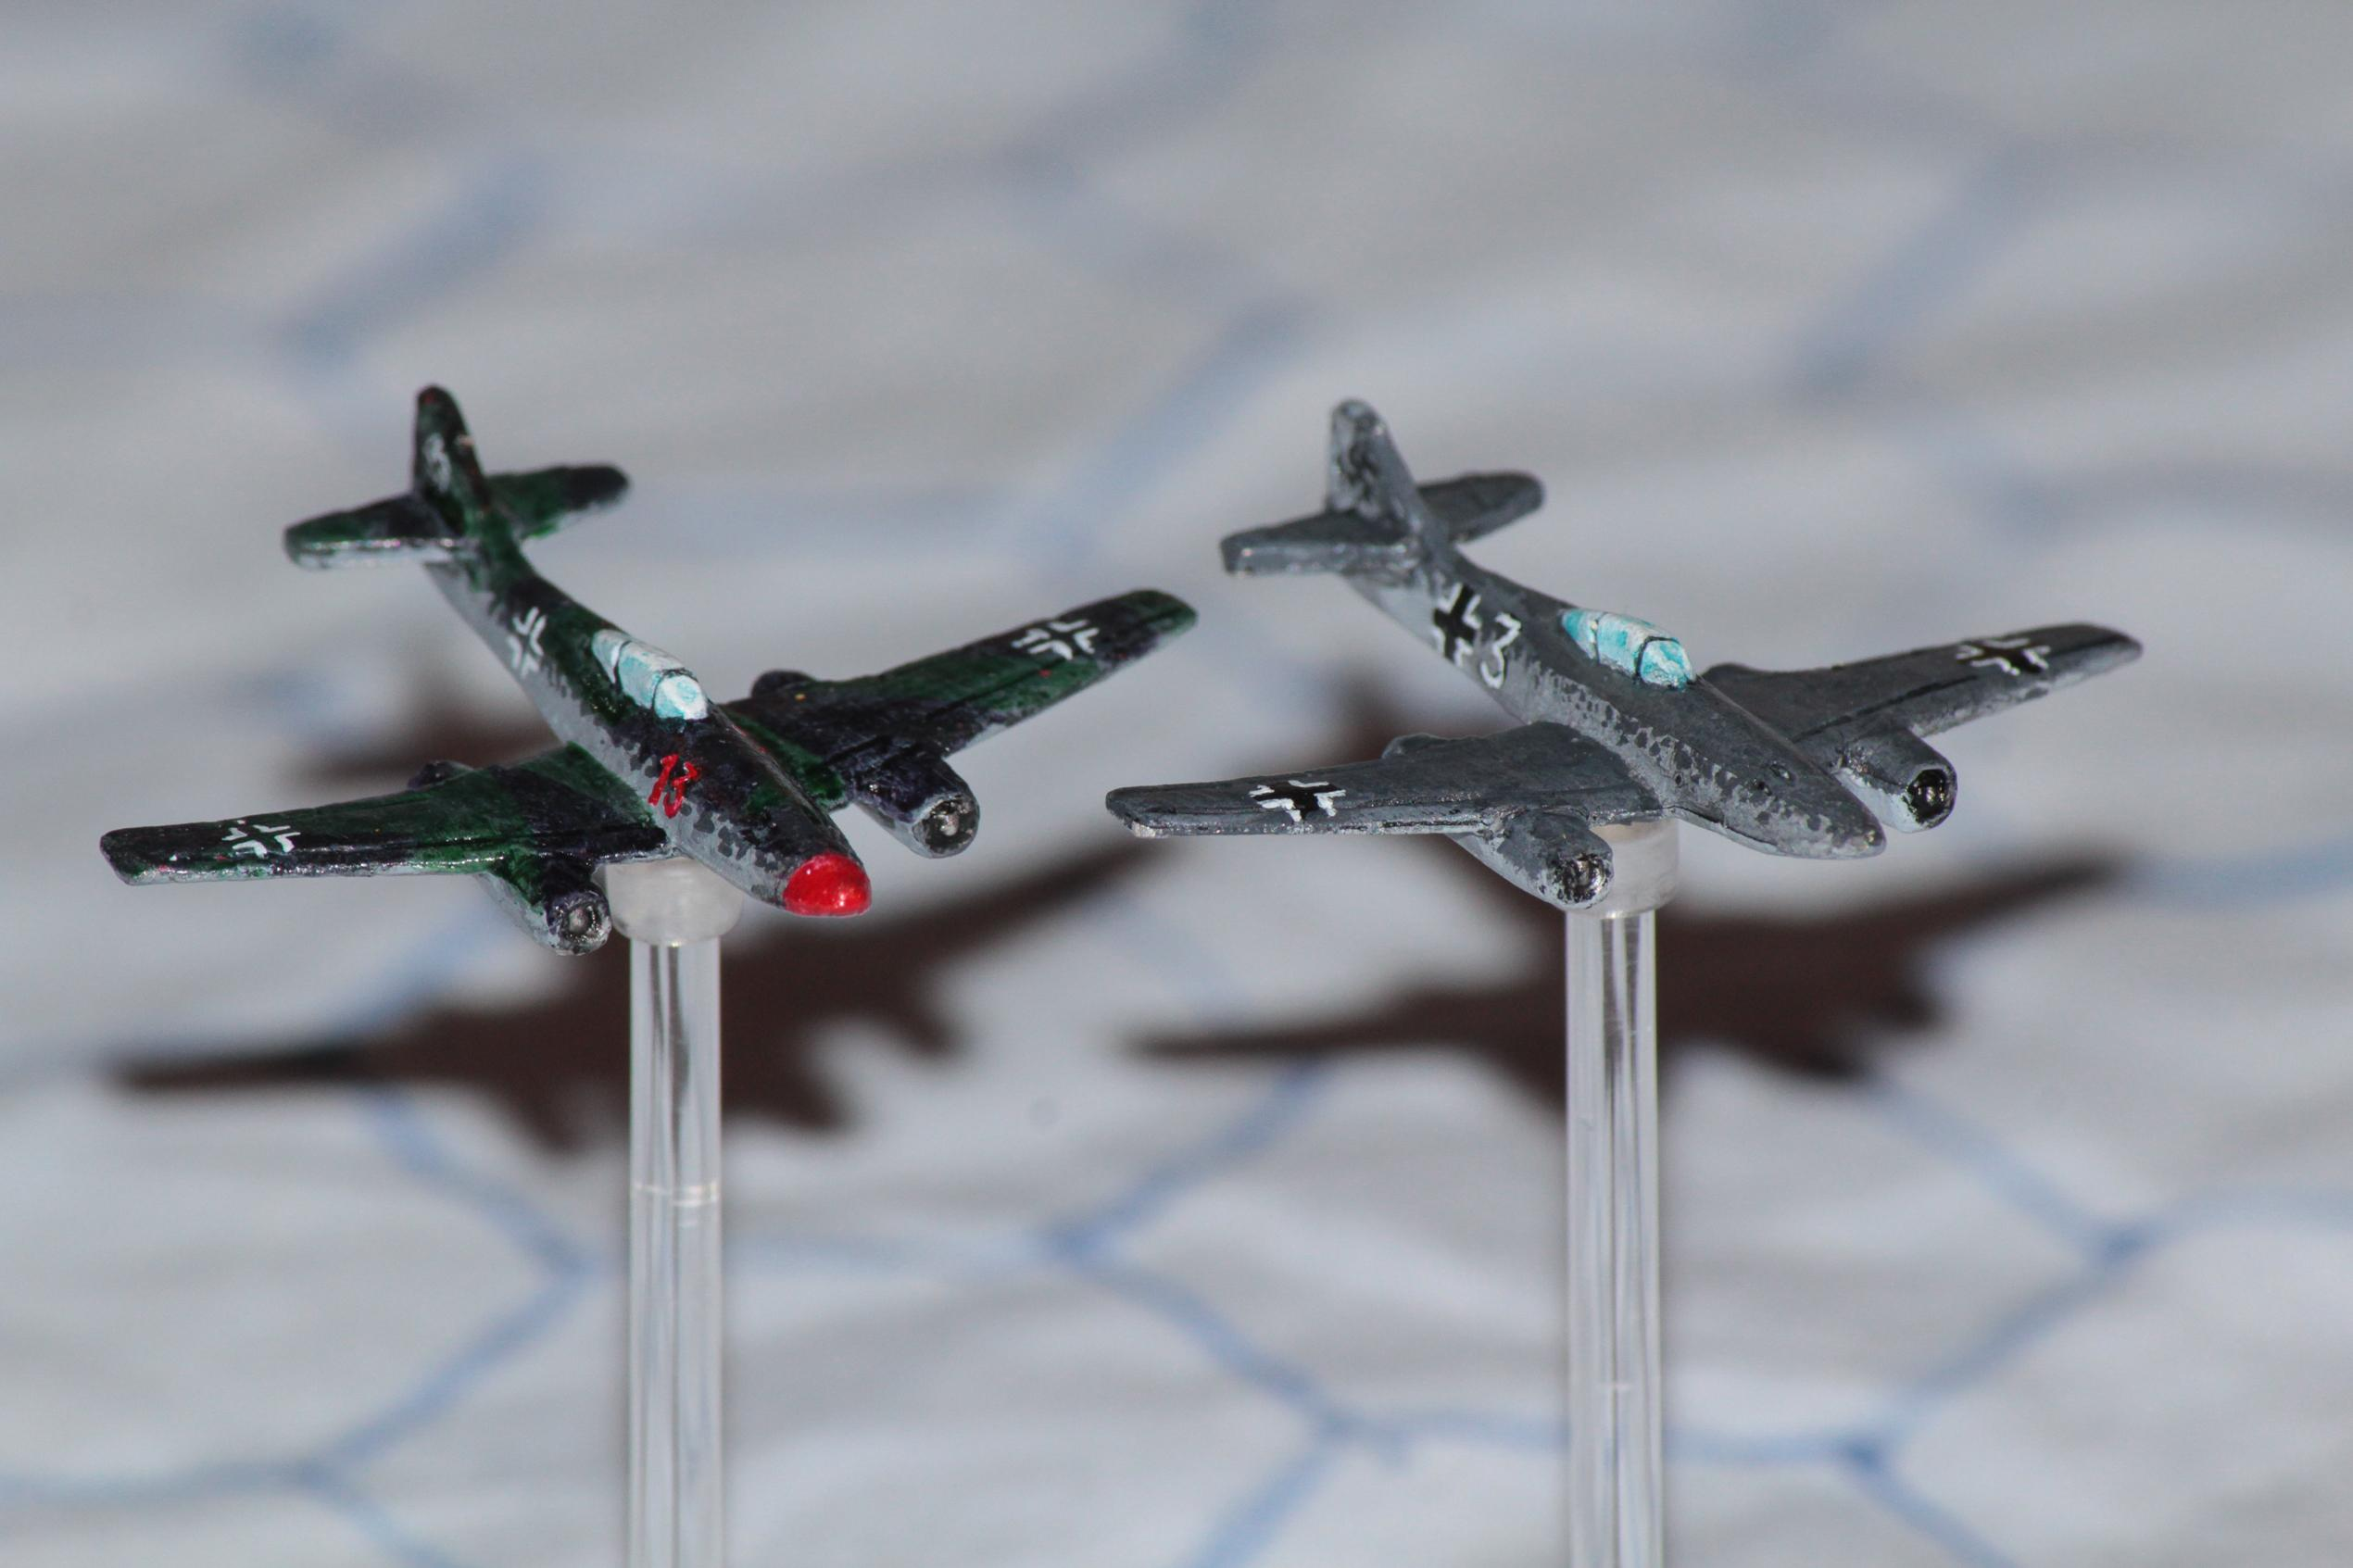 1:300, 1:300 Scale, 6mm, 6mm Scale, Air Combat, Early Jet, Finland, French, Germans, Imperial Japan, Italian, Jet Fighter, Luftwaffe, Me-252, Me-262, Raf, Republic Of China, Soviet, Usaaf, World War 2